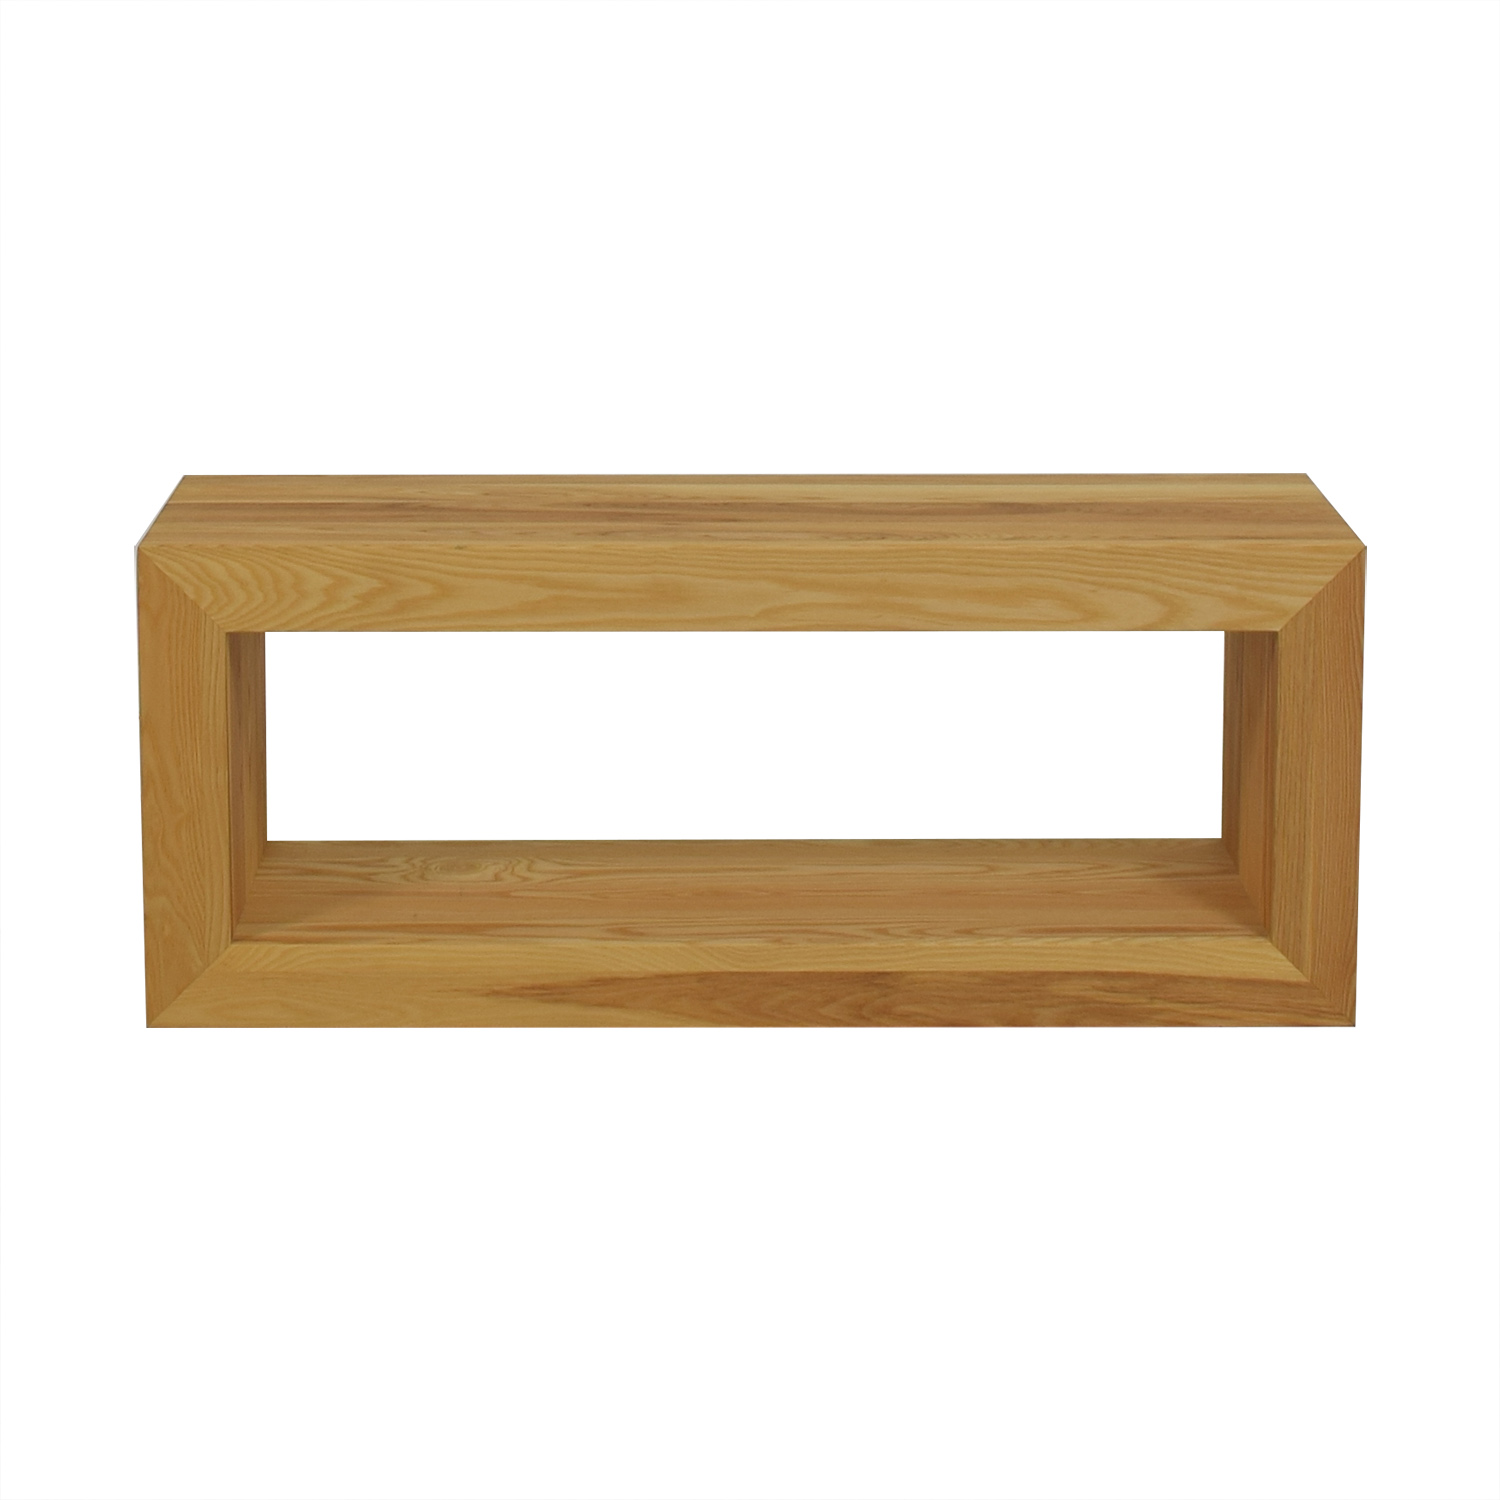 Hugo & Hoby Humphrey Entertainment Console / Storage